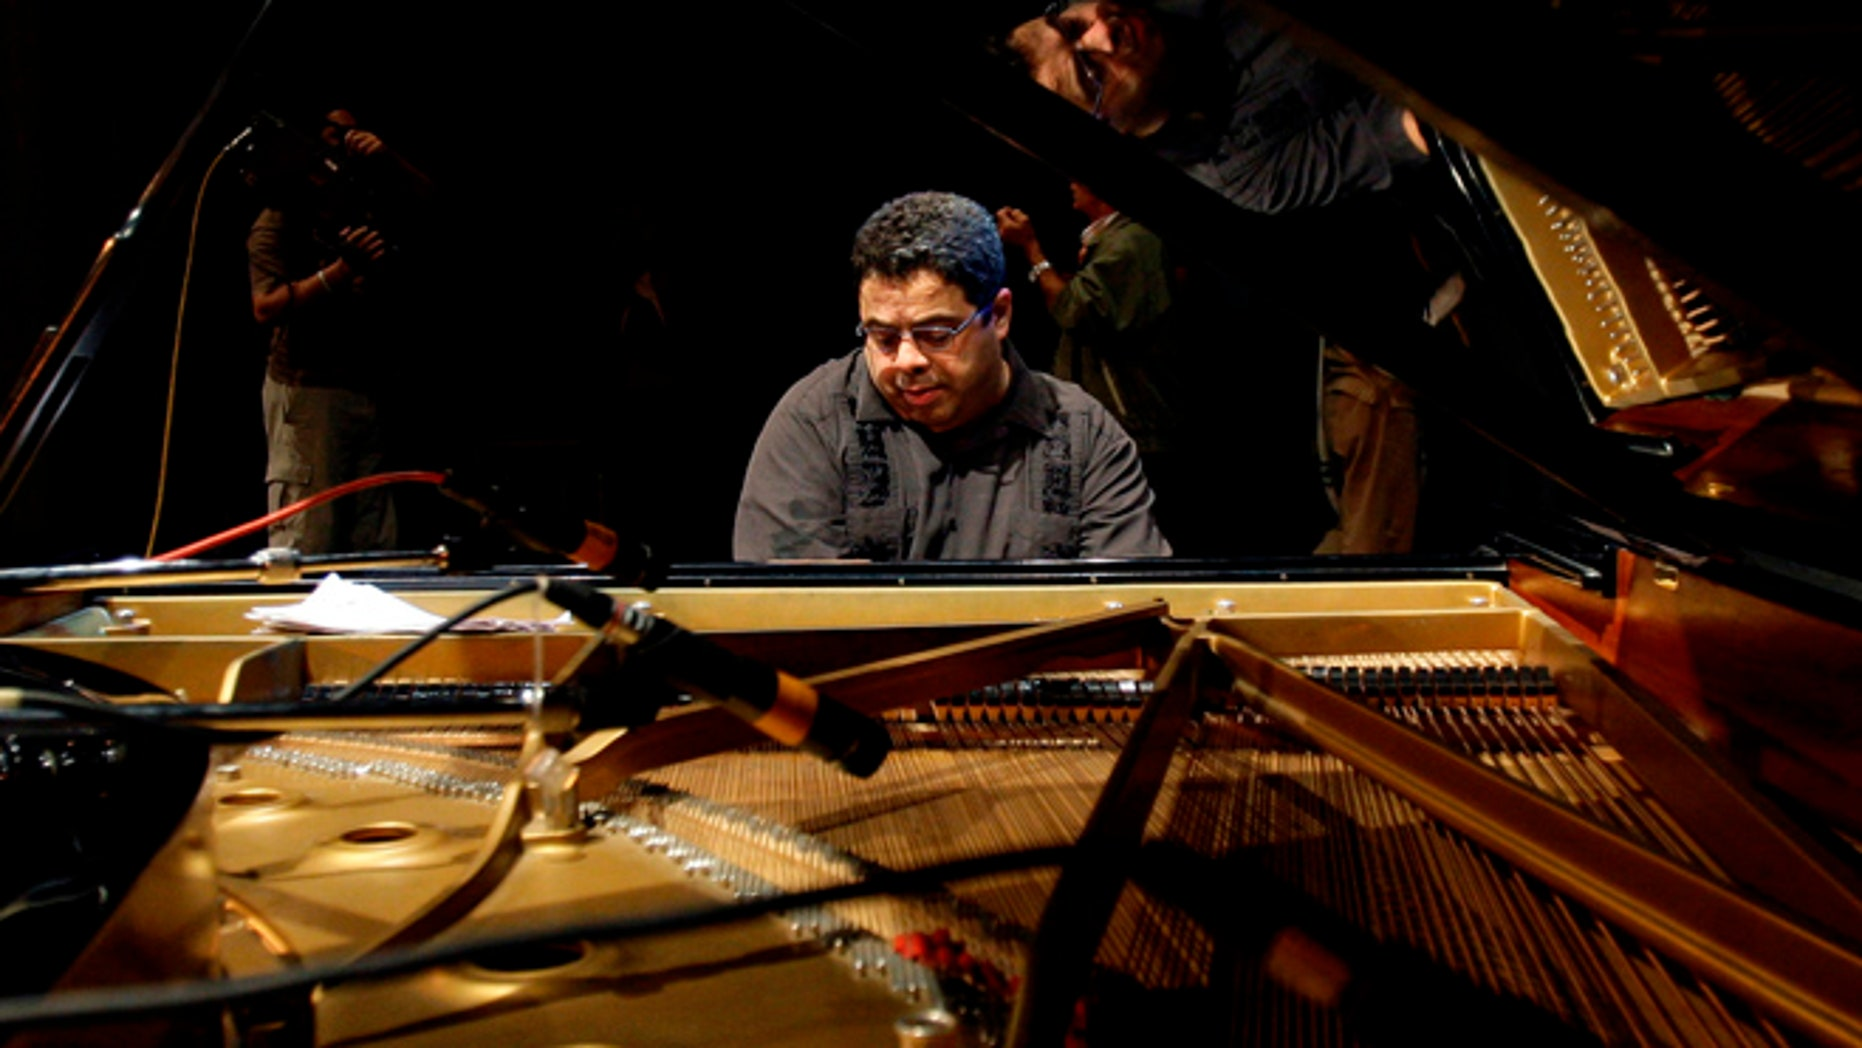 """FILE - In this Dec. 15, 2011 file photo, U.S. pianist and composer Arturo O'Farrill rehearses for Cuba's 27th International Jazz Festival in Havana, Cuba. O'Farrill is nominated for two Grammys, one for large jazz ensemble album for """"Cuba:The Conversation Continues,"""" and best instrumental composition for """"The Afro Latin Jazz Suite."""" (AP Photo/Franklin Reyes, File)"""